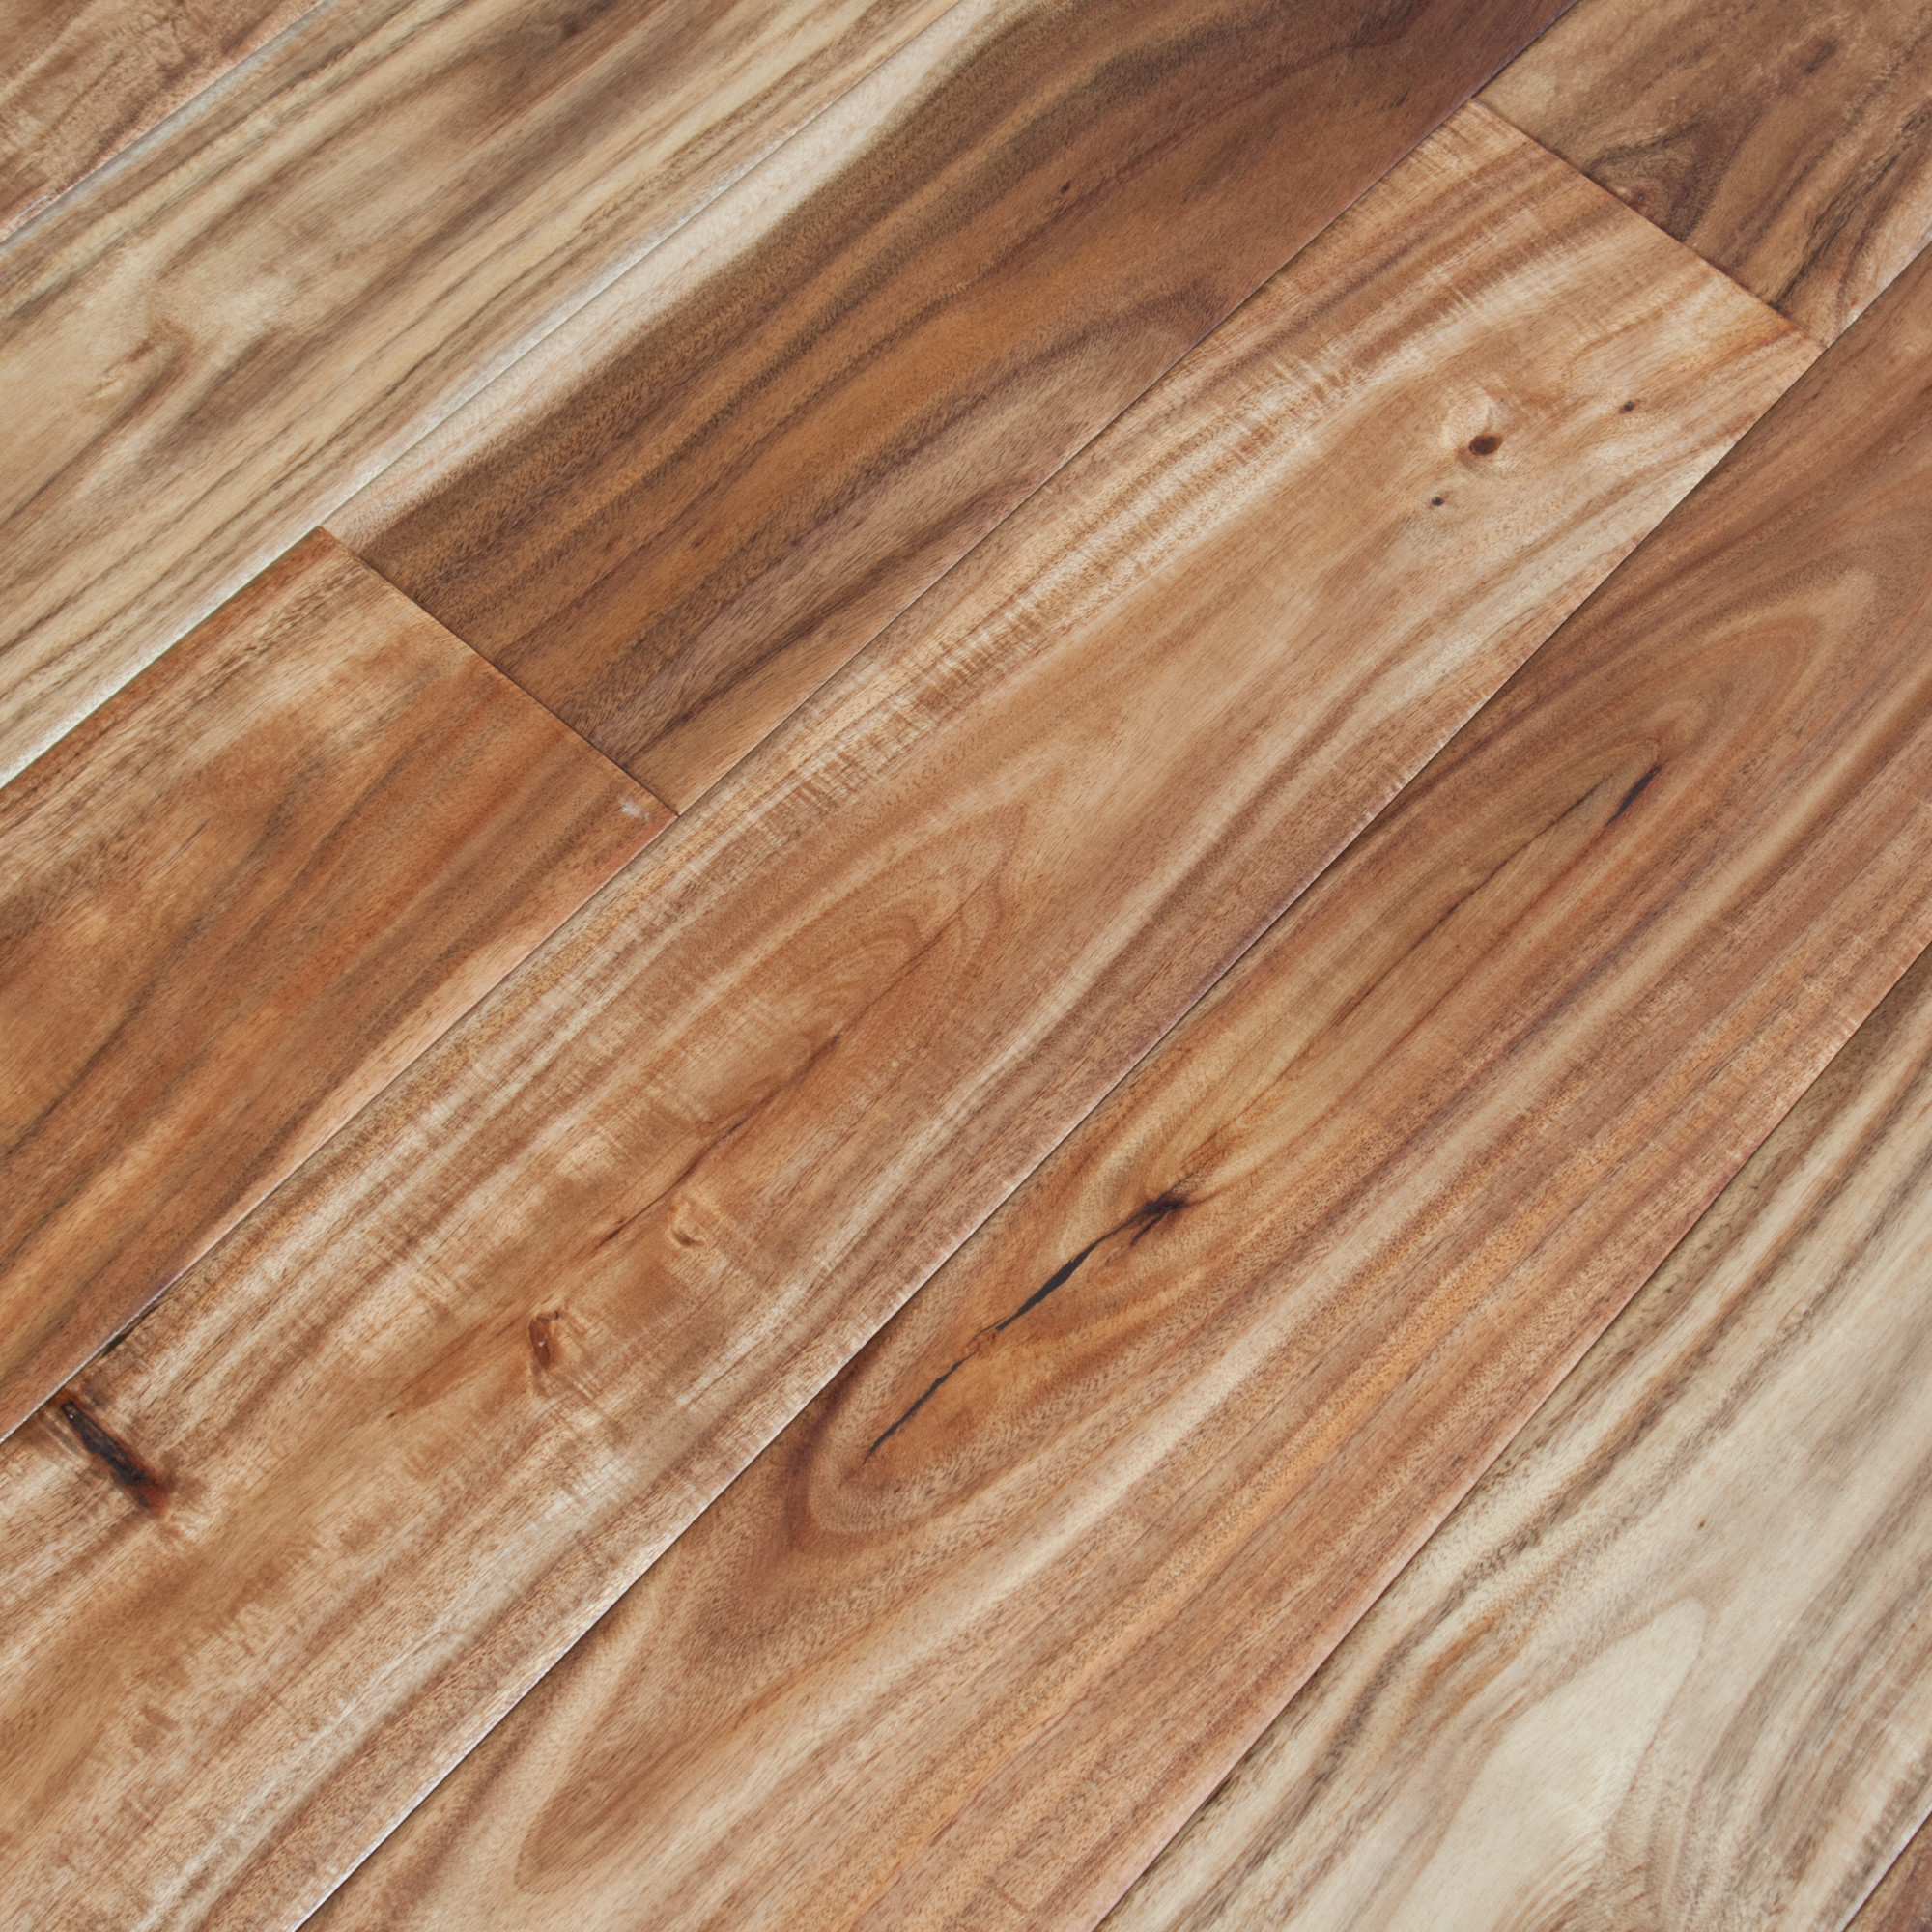 Tongue and Groove Hardwood Flooring Of 9 Mile Creek Acacia Hand Scraped Acacia Confusa Wood Floors within Acacia Handscraped Natural Hardwood Flooring